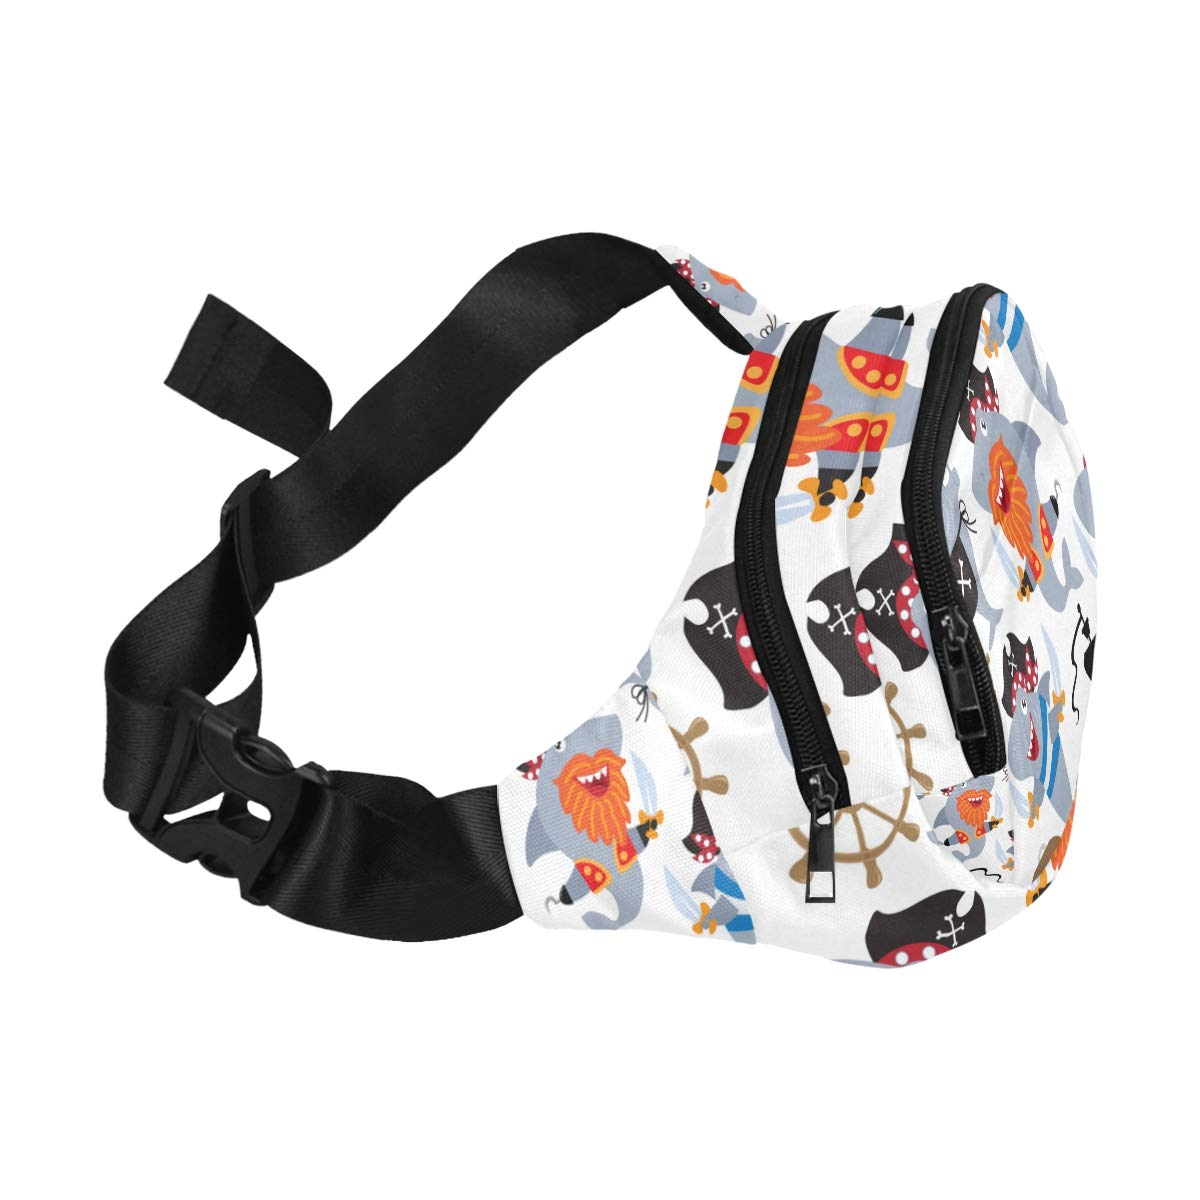 Cute Pirate And Shark In The Sea Fenny Packs Waist Bags Adjustable Belt Waterproof Nylon Travel Running Sport Vacation Party For Men Women Boys Girls Kids